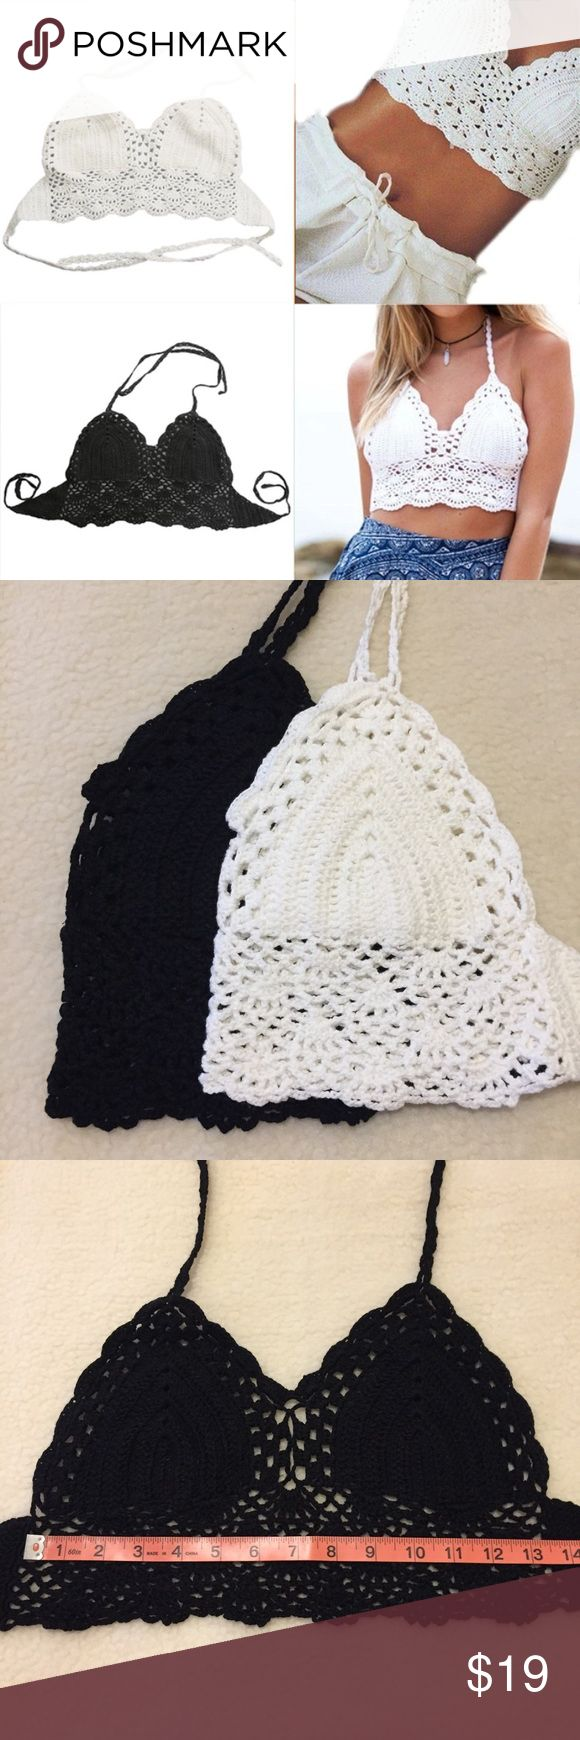 Crochet Crop Top Black White Nude Halter style, crochet with lining. Pair it with denim shorts or your own bikini bottoms!  Available in black, white and nude/tan colors  One size, best fit size 32-38 cups A, B and C. STAR Swim Bikinis